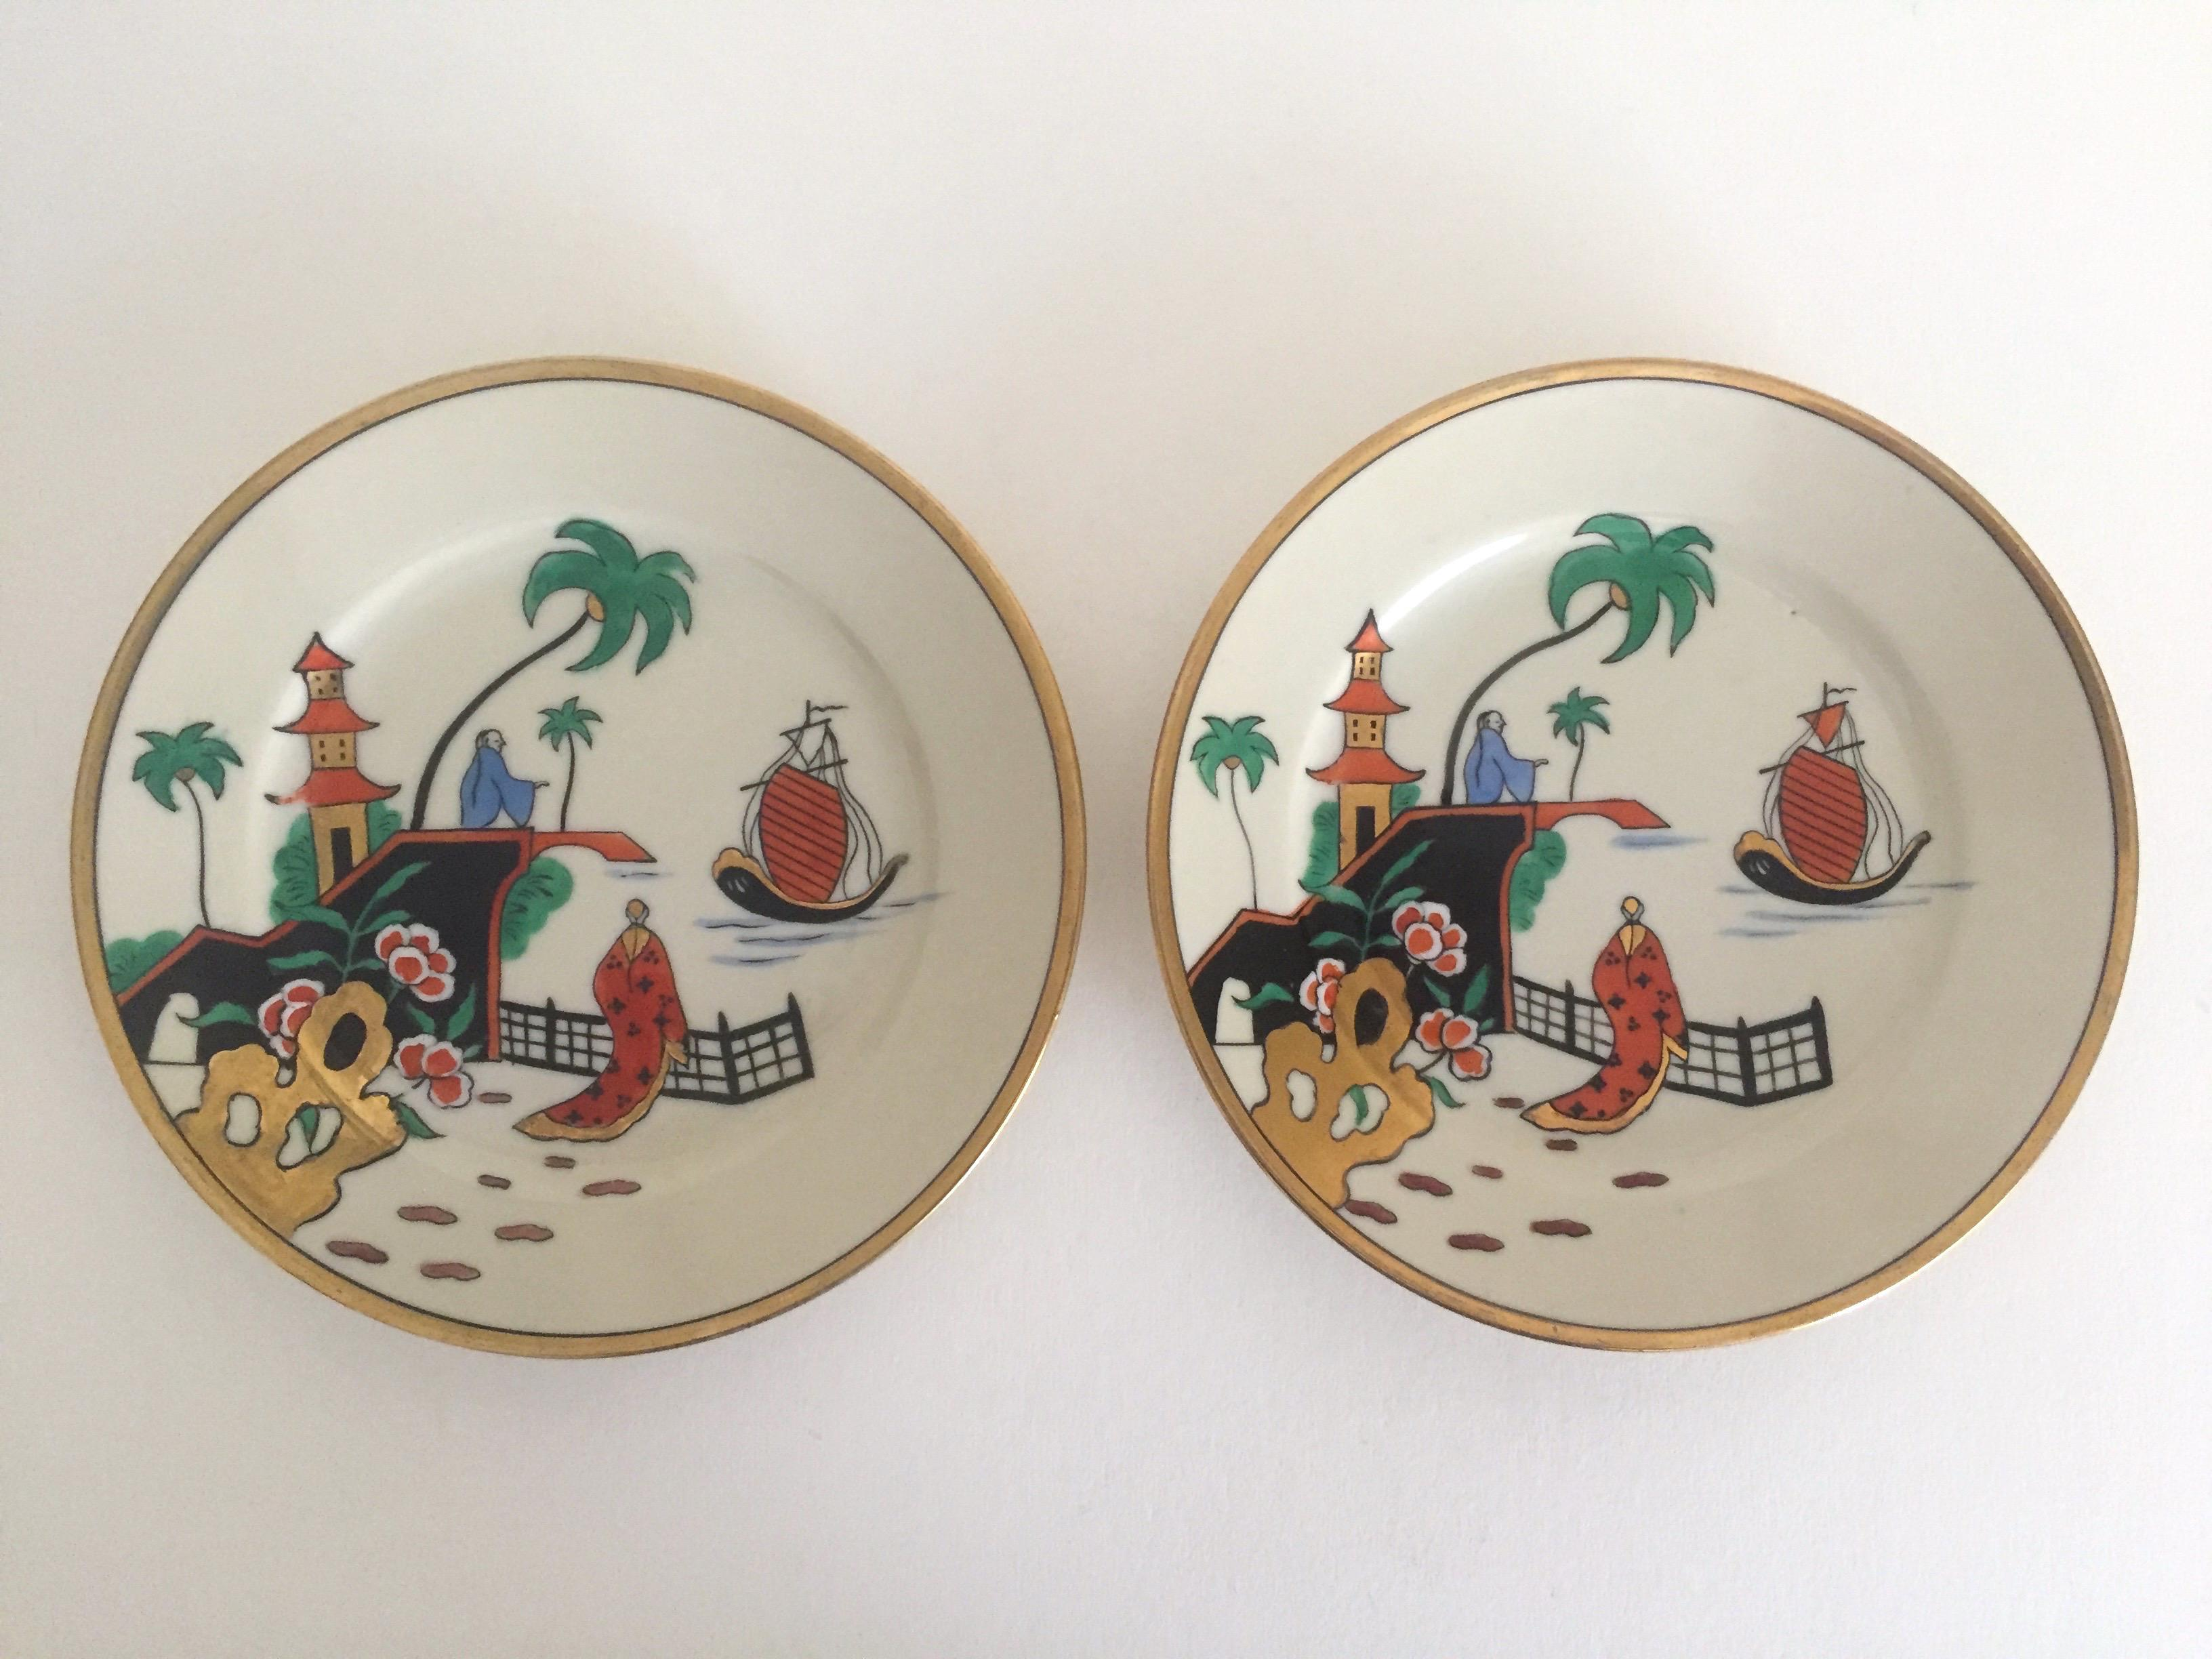 Vintage Noritake Japan Mid Century Modern Hand Painted Decorative Plates - a Pair - Image 2  sc 1 st  Chairish & Vintage Noritake Japan Mid Century Modern Hand Painted Decorative ...